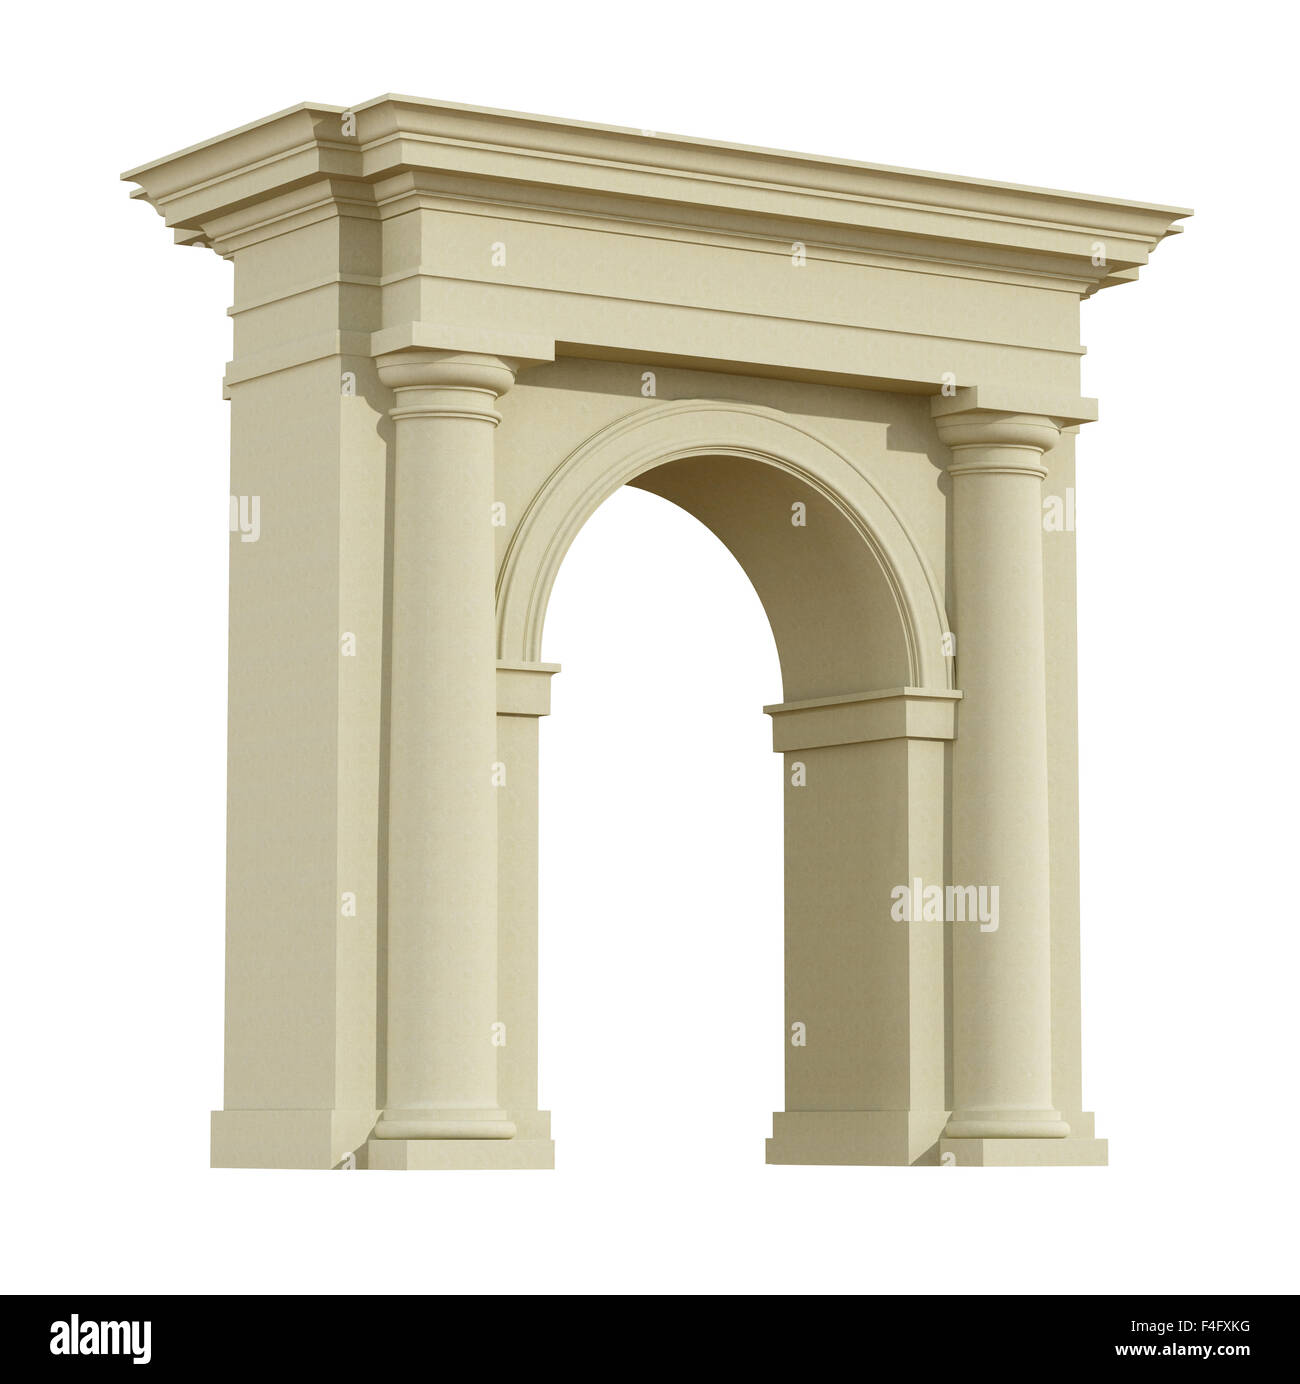 Perspective View Of A Classic Arch In Tuscany Order Isolated On White